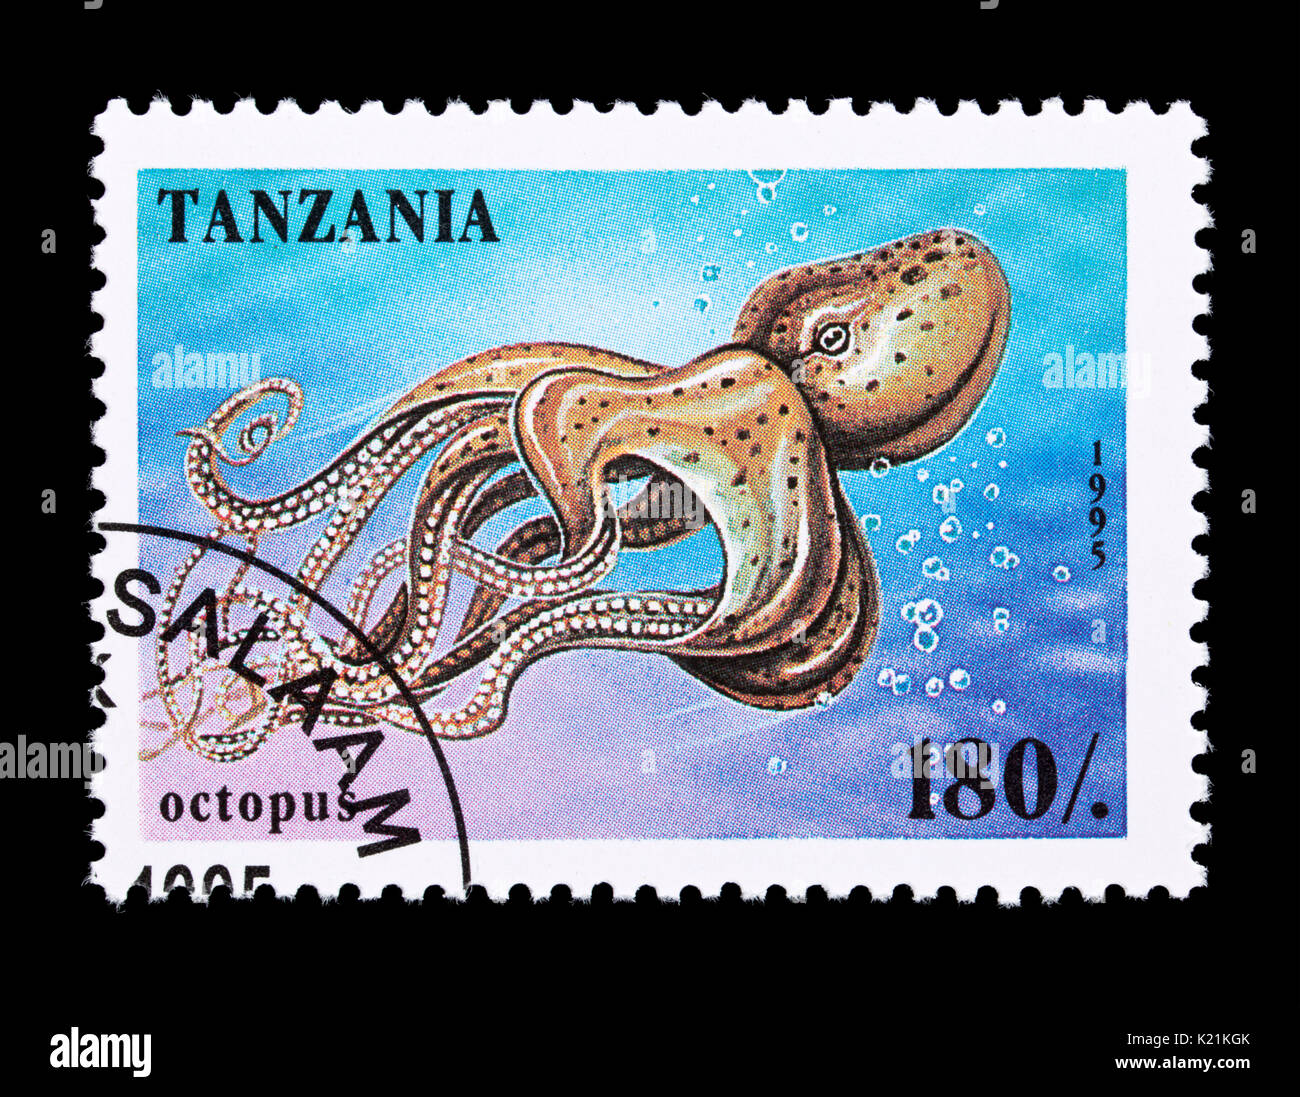 Postage Stamp From Tanzania Depicting An Octopus